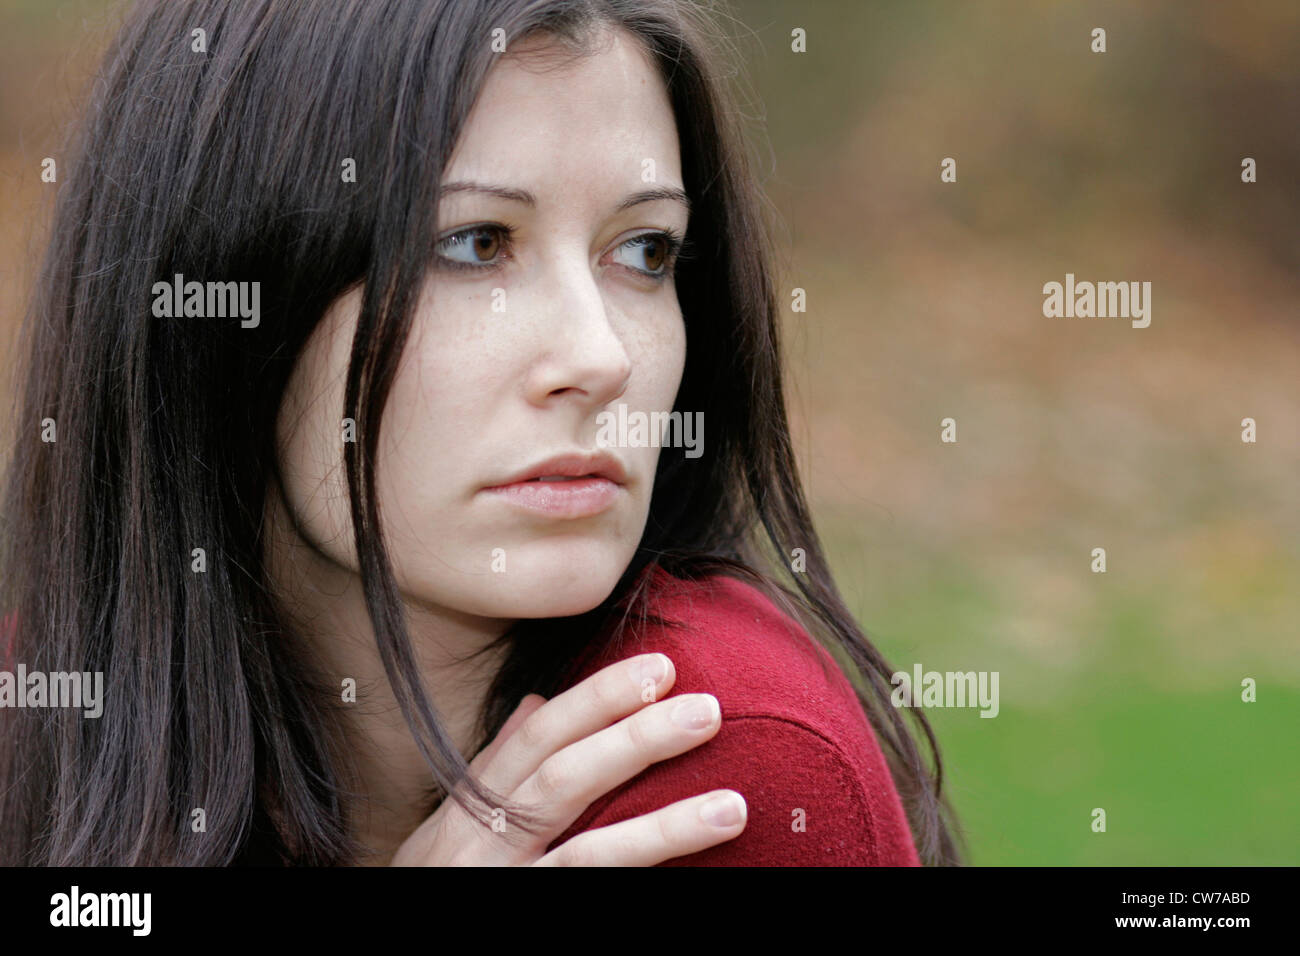 portrait of darkhaired woman, Germany - Stock Image